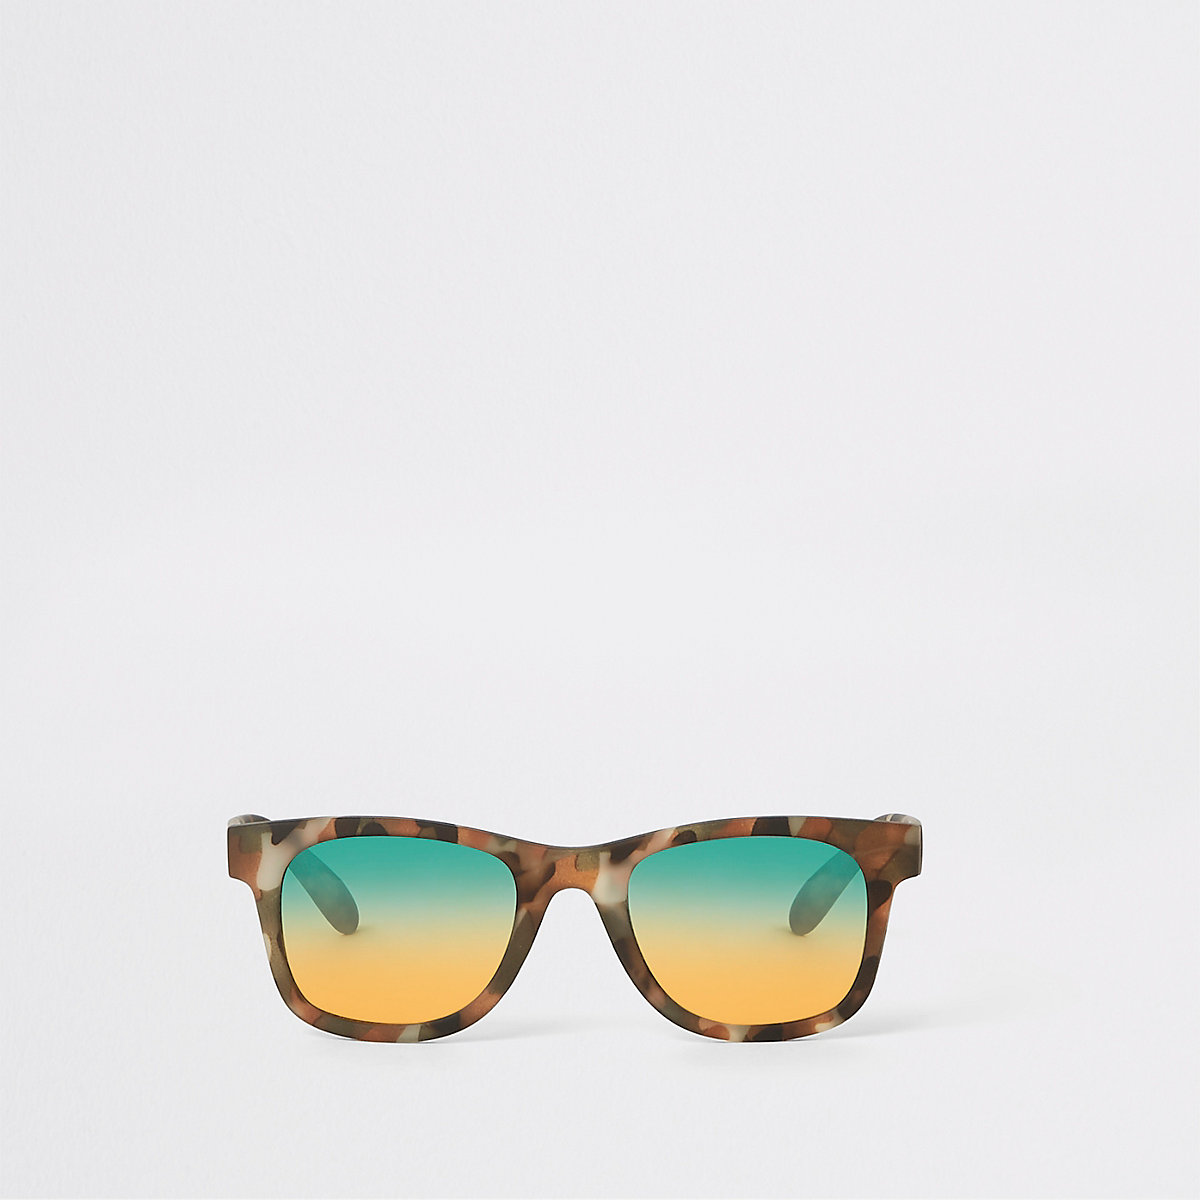 Mini boys khaki camo retro sunglasses